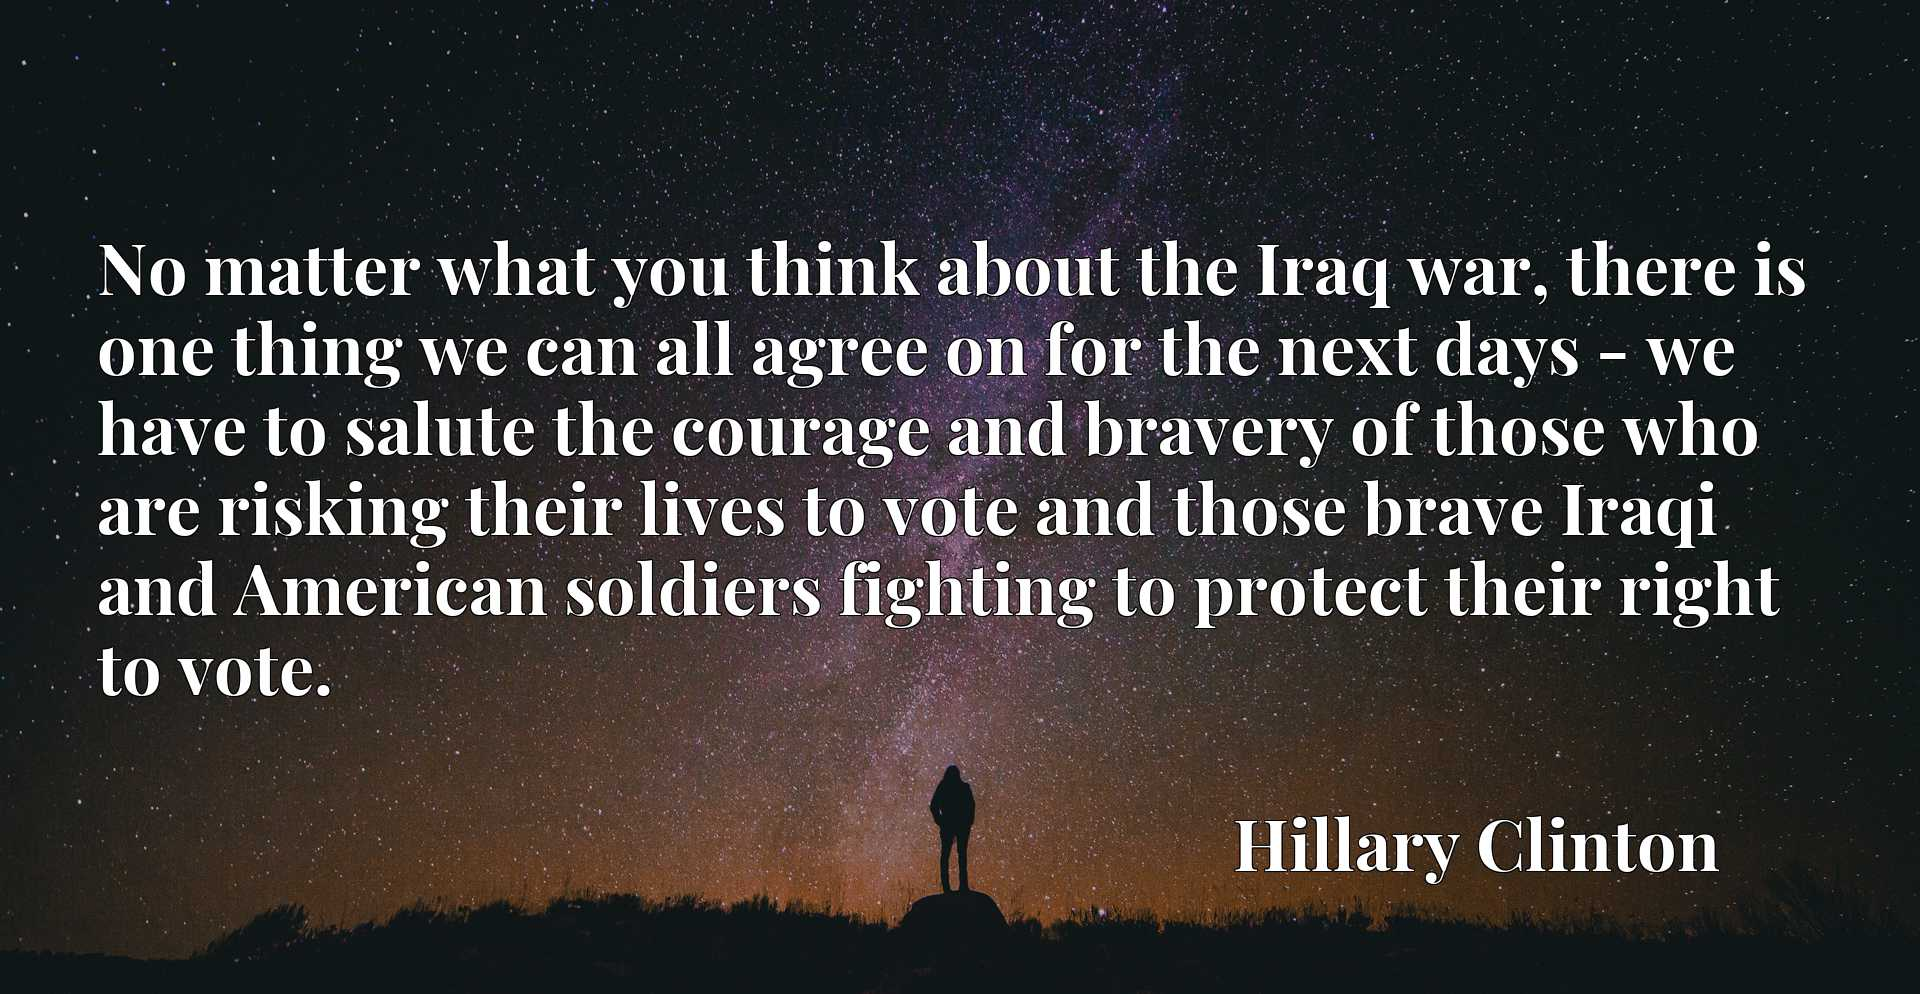 No matter what you think about the Iraq war, there is one thing we can all agree on for the next days - we have to salute the courage and bravery of those who are risking their lives to vote and those brave Iraqi and American soldiers fighting to protect their right to vote.